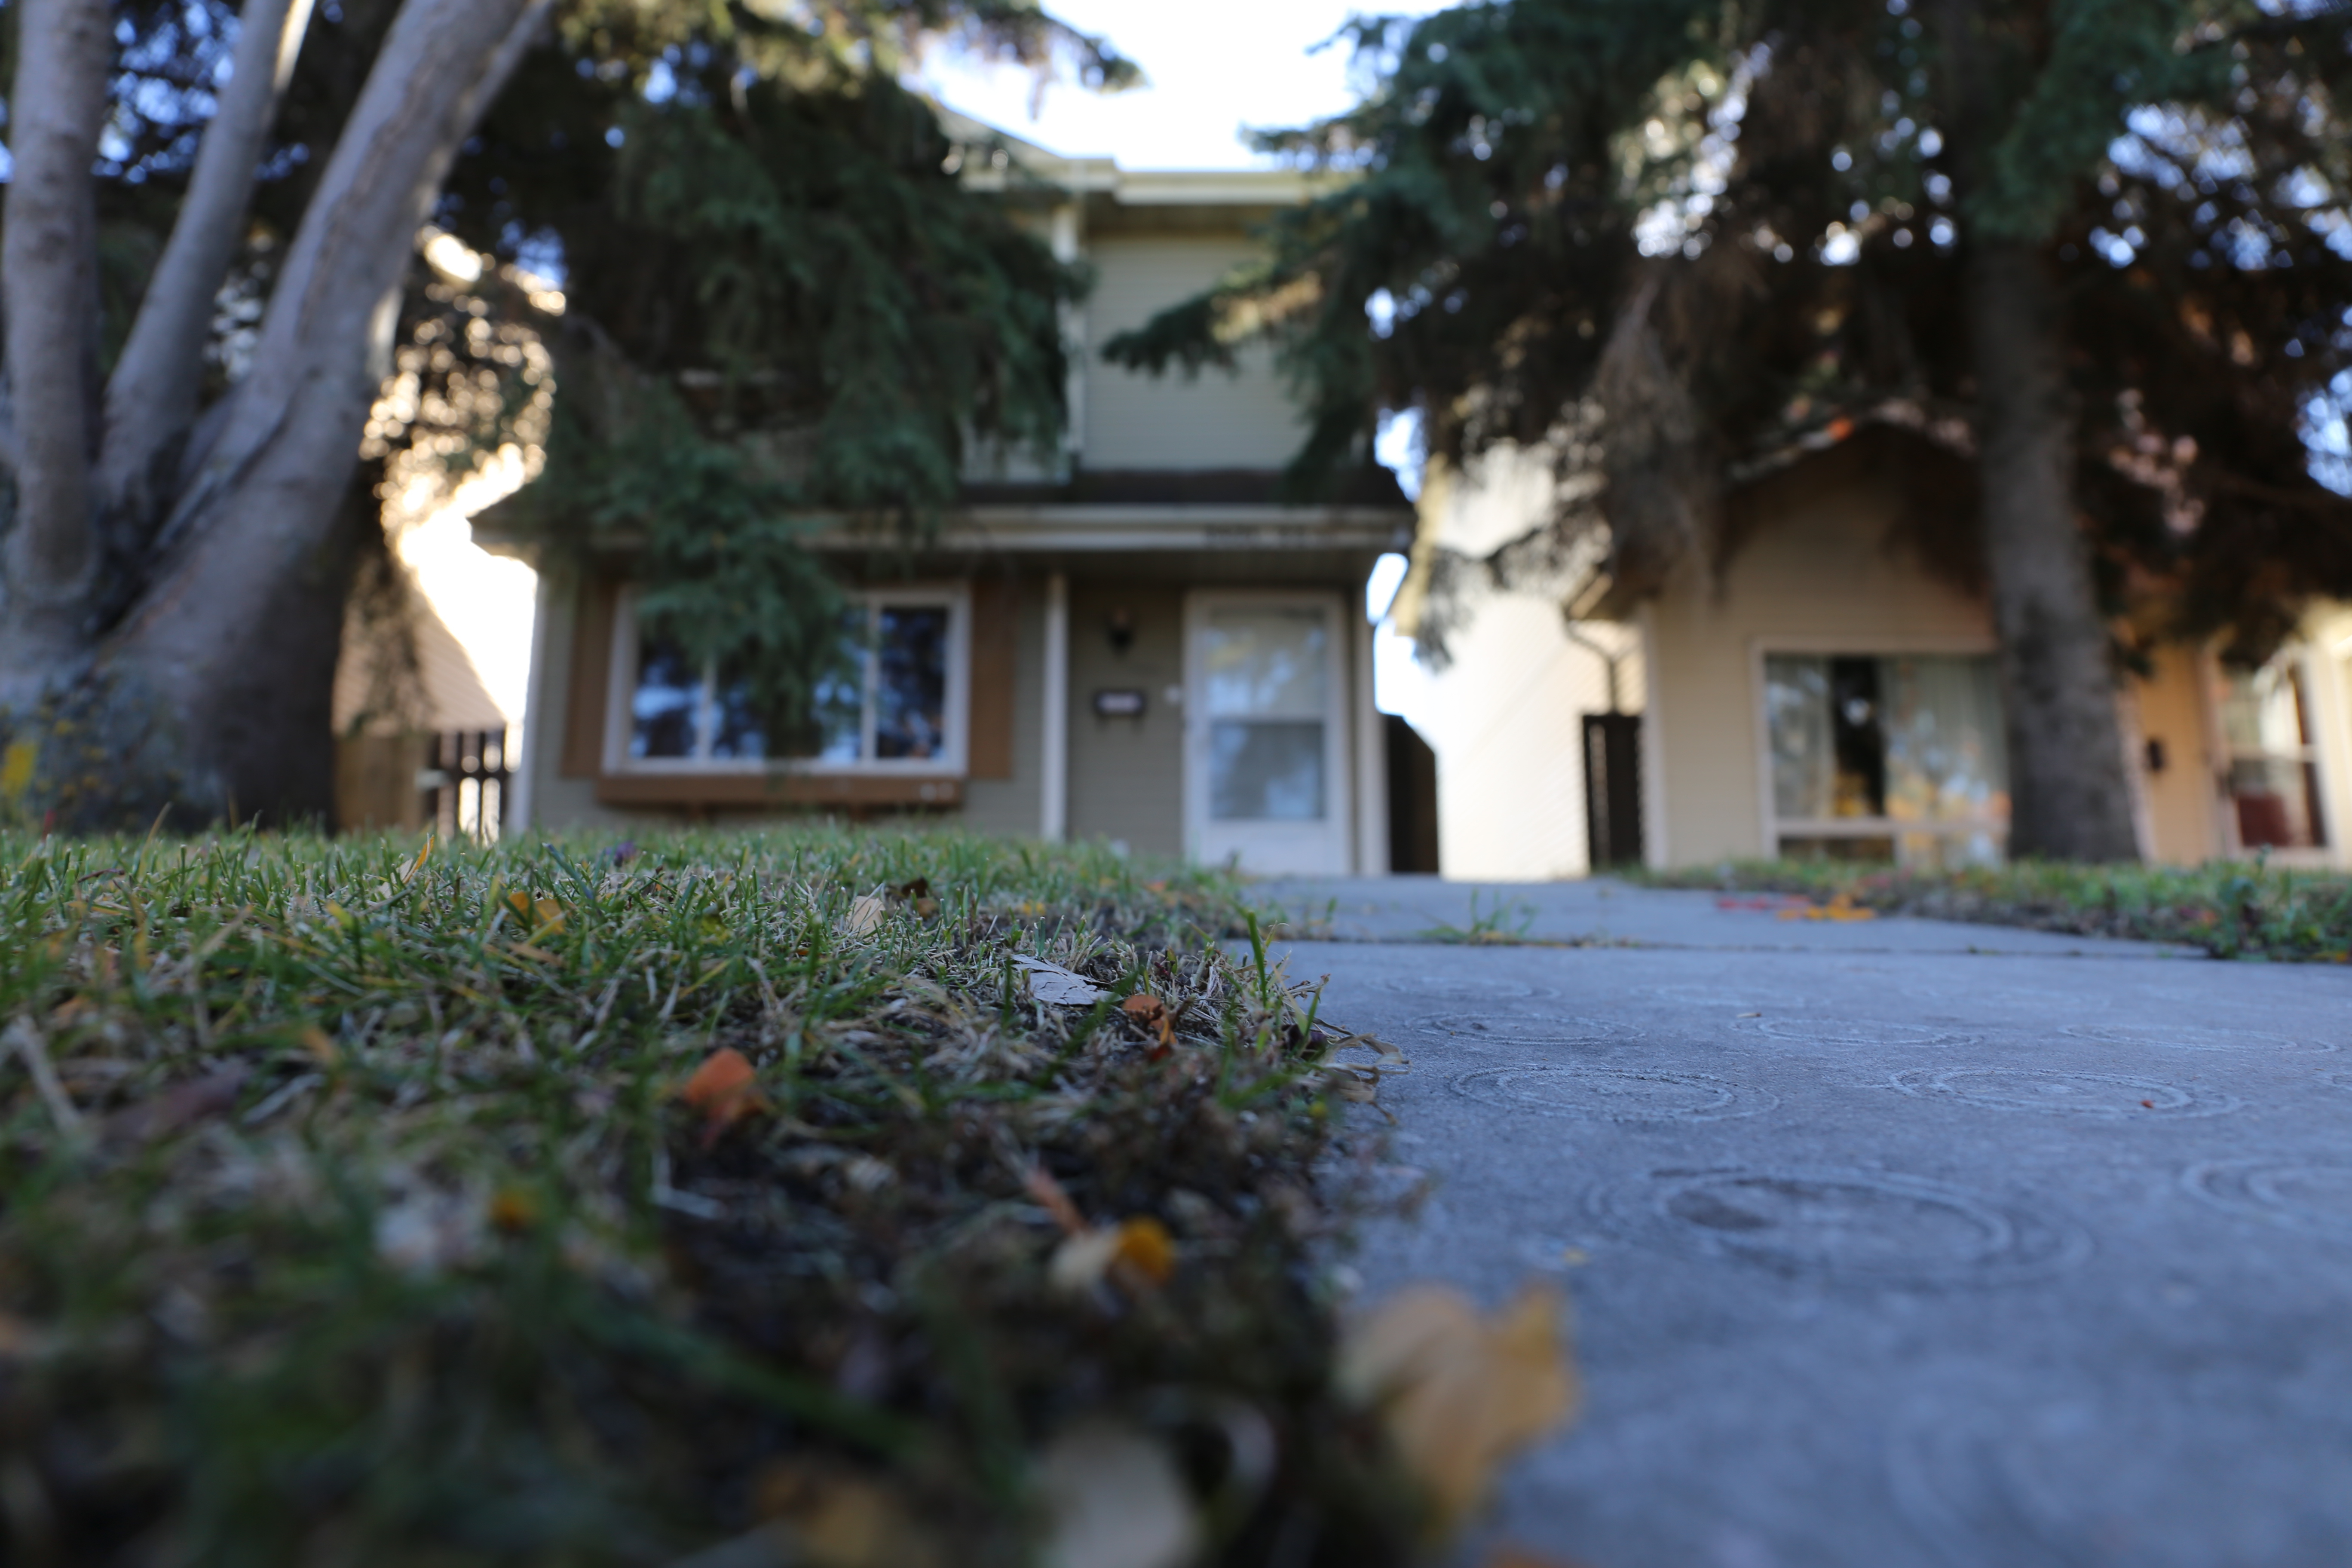 Hailey Mills believes spirits were living in her Mill Woods home. (Kory Siegers/CBC Edmonton)